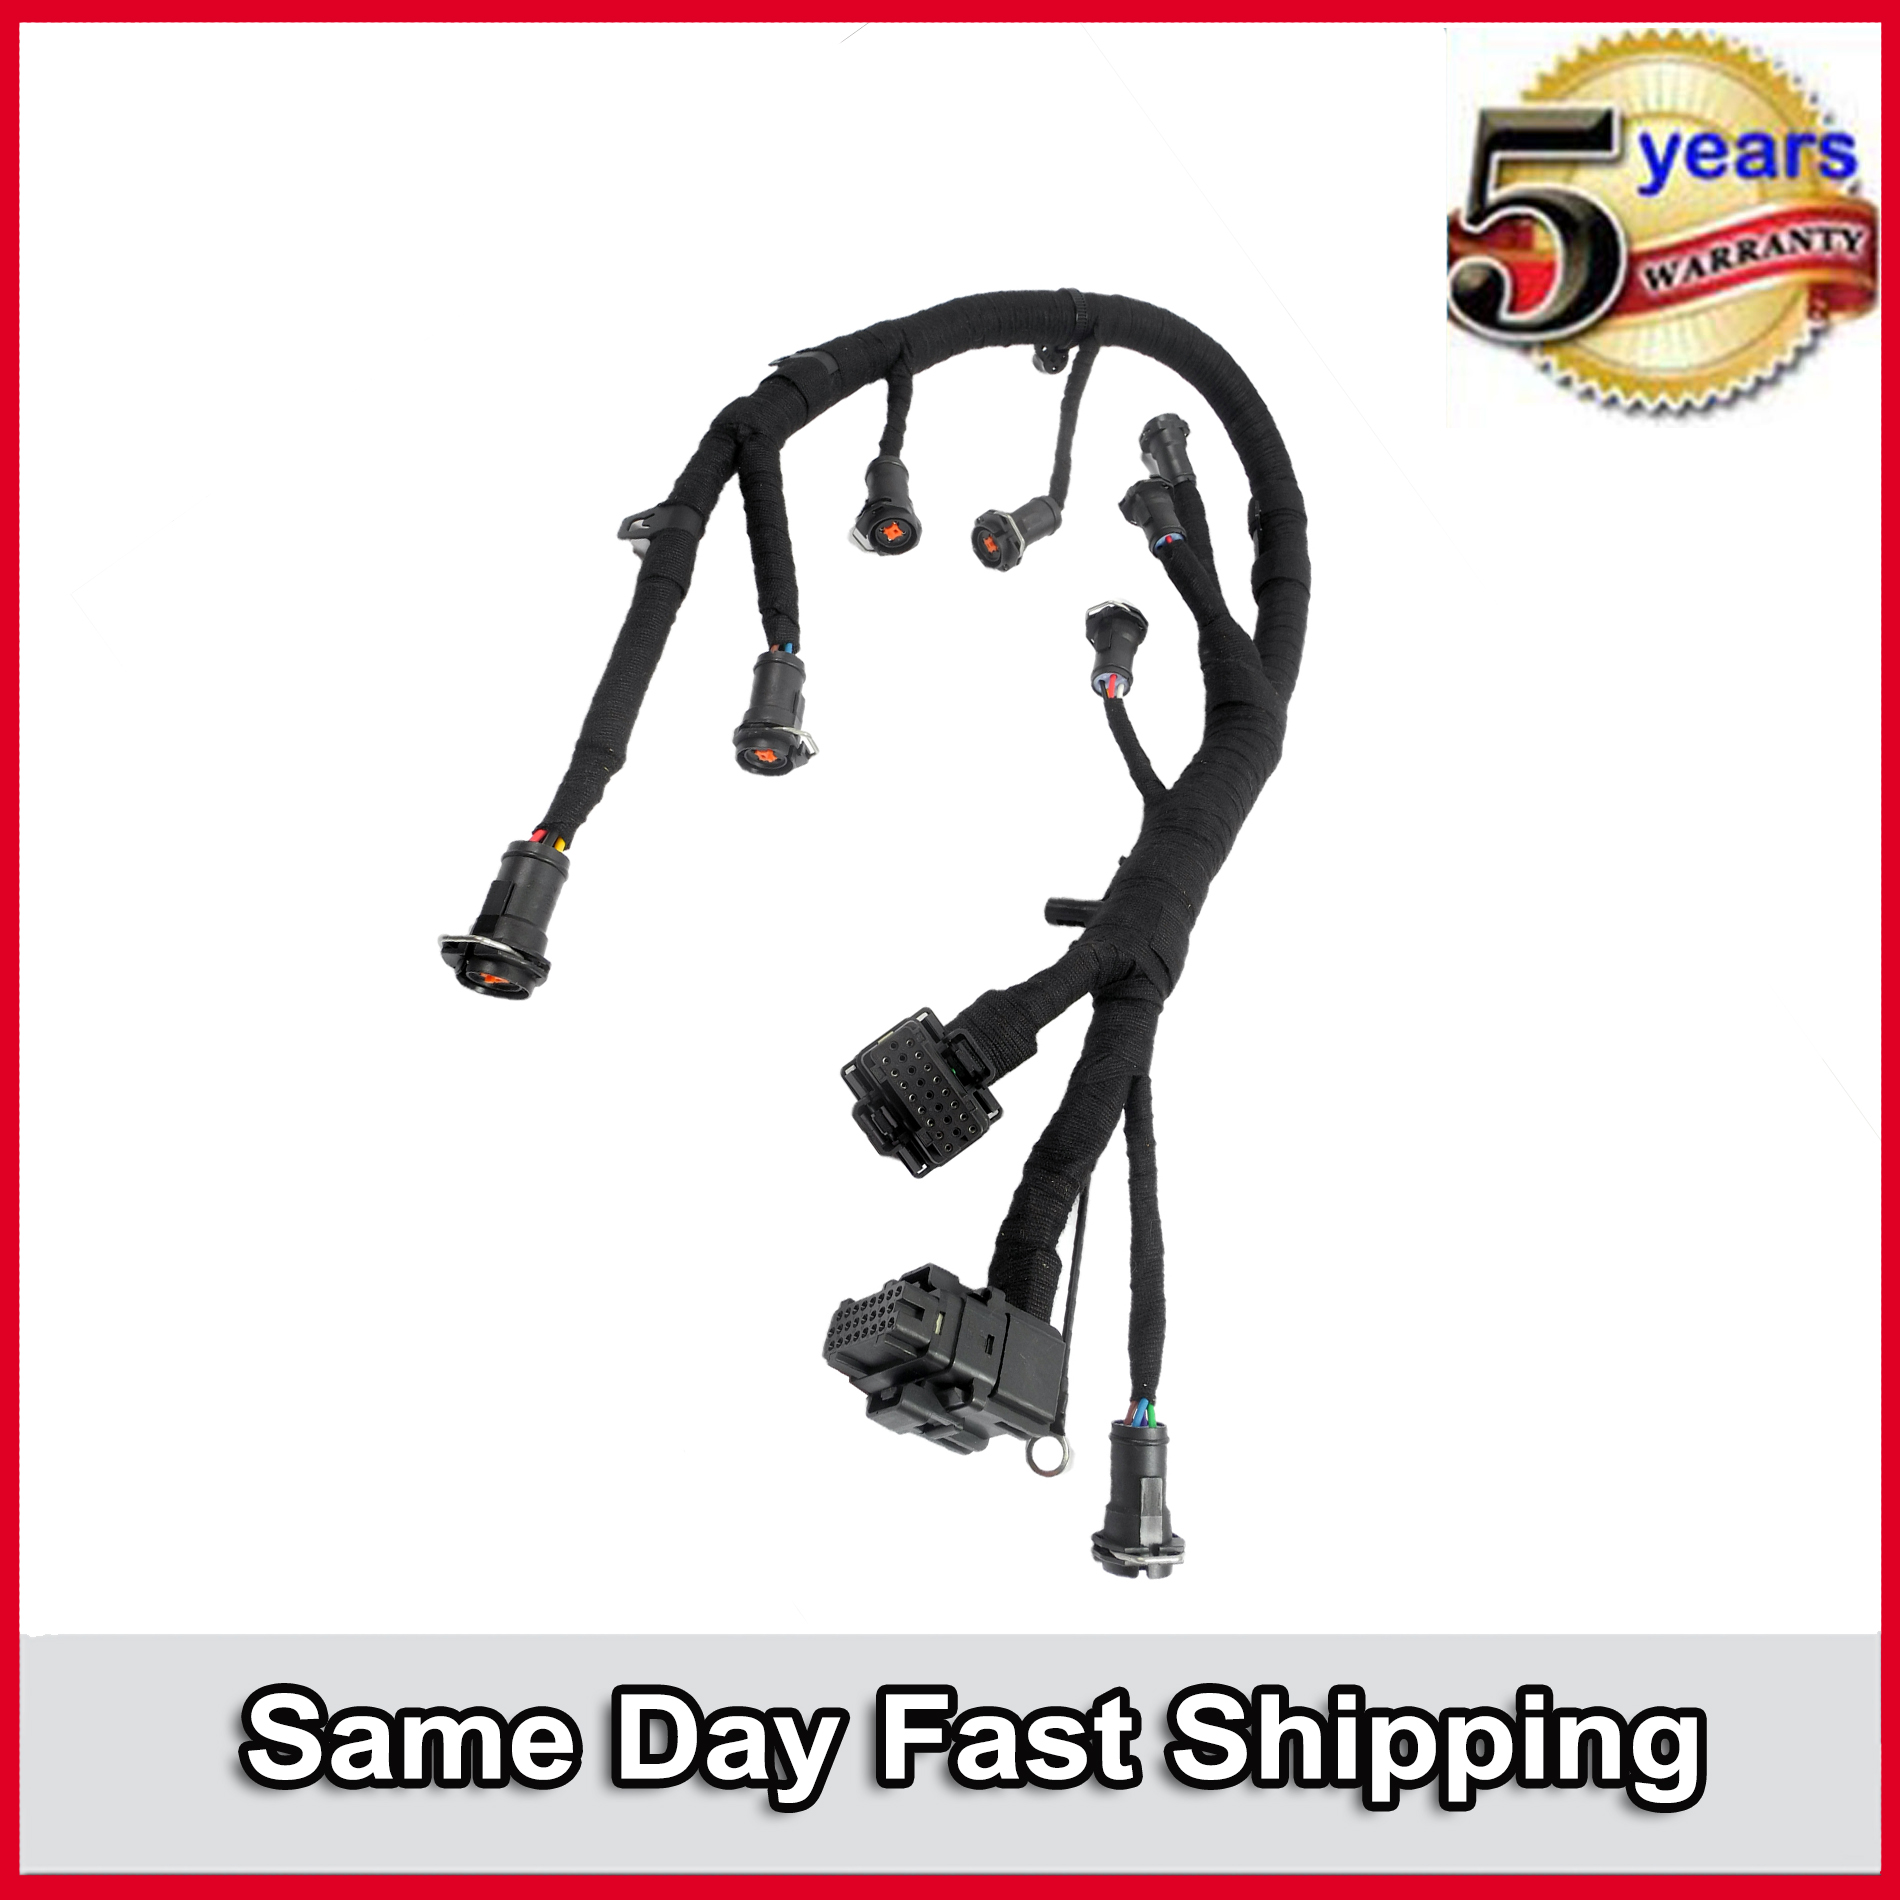 2003-2007 For Ford 6.0L Powerstroke Diesel Fuel Injector Jumper Wiring Harness